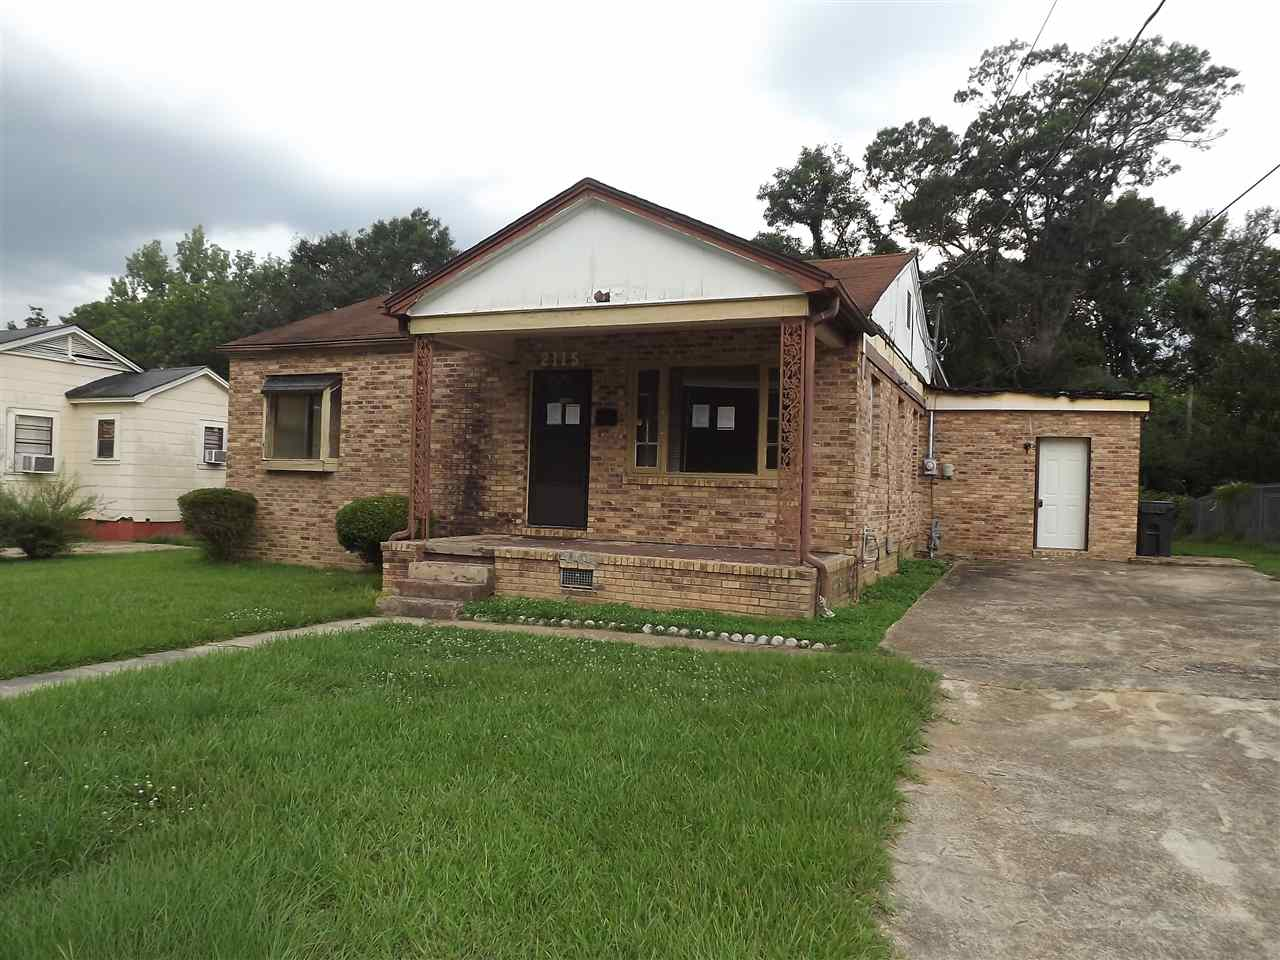 Photo of 2115 49TH AVE  Meridian  MS